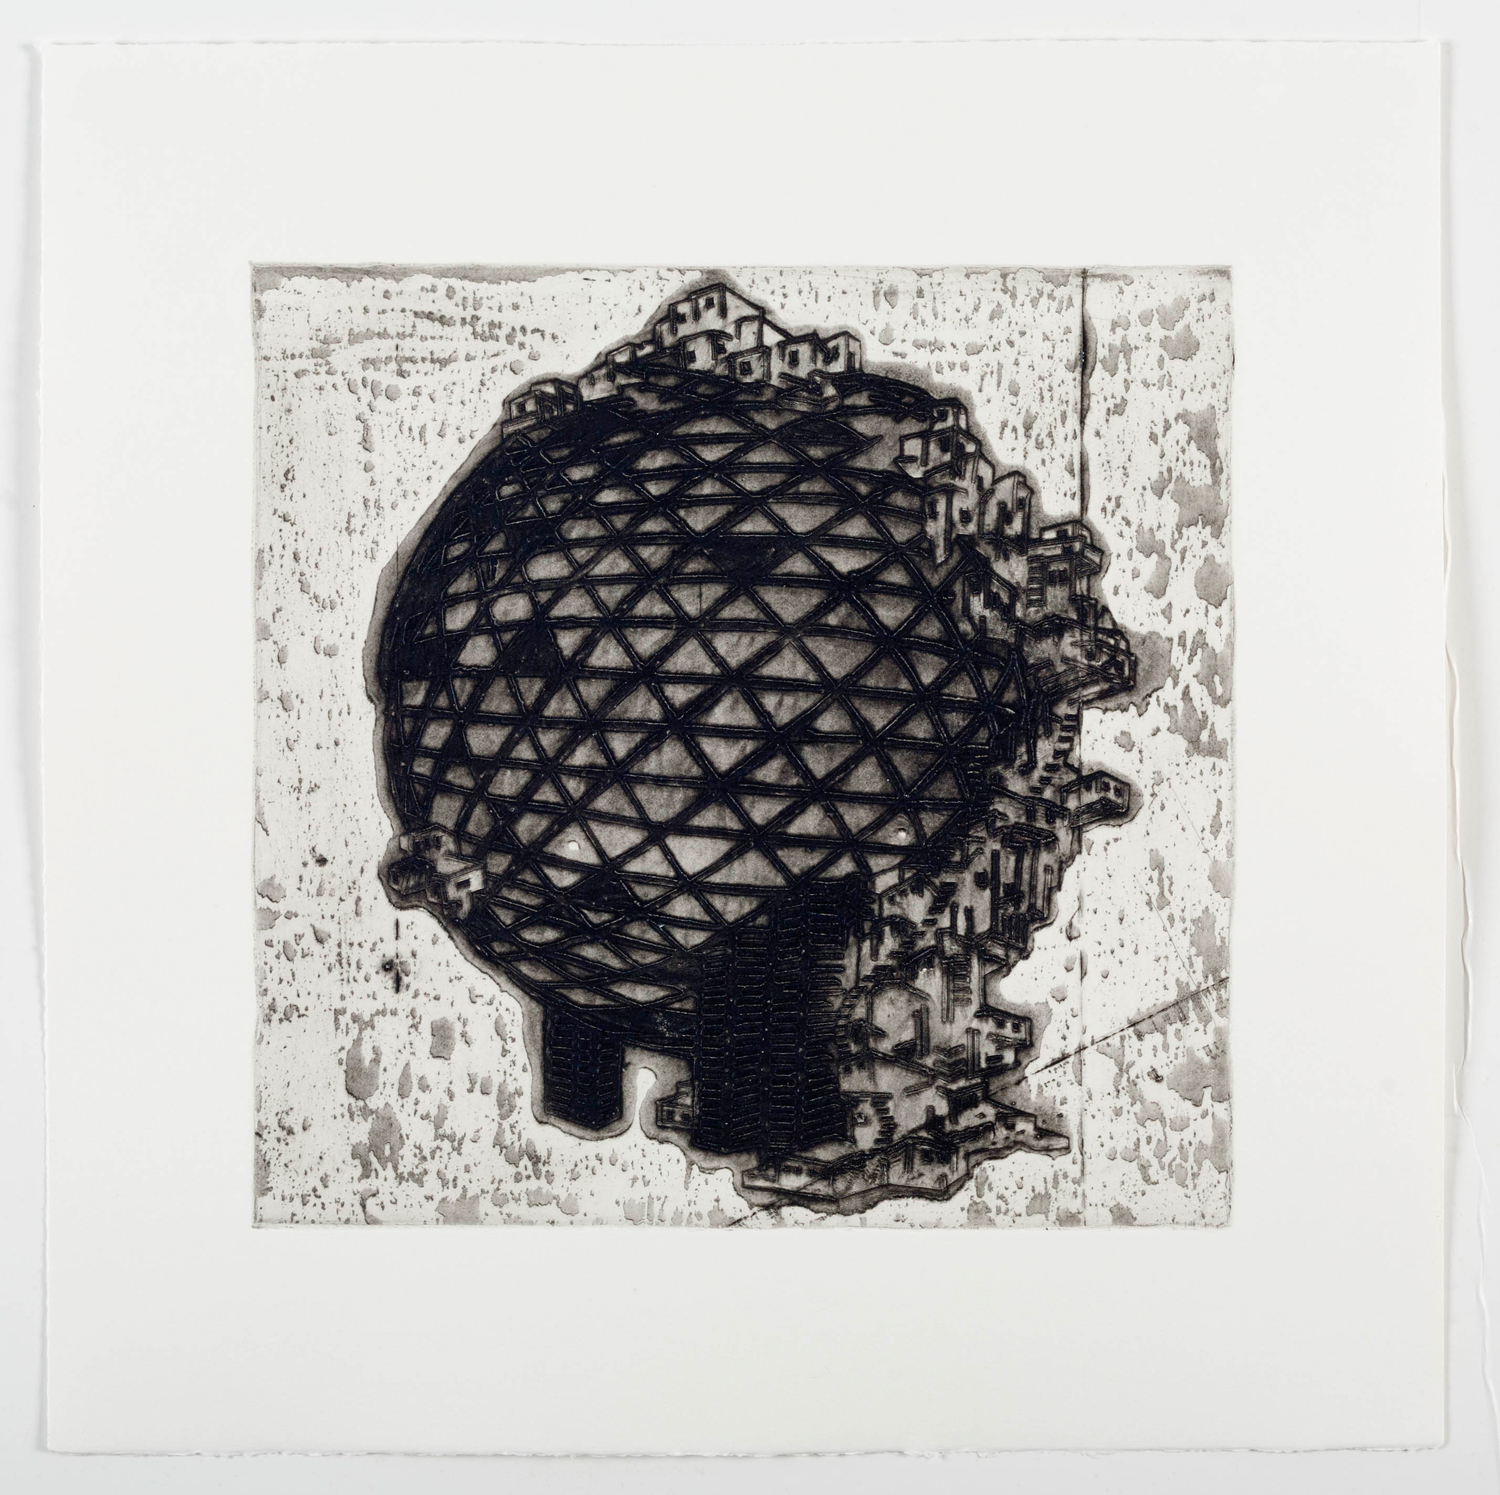 """Ideal Structures for a Dubious Future (Globe Sprawl)  2012; Explosive intaglio on paper; 17"""" x 17""""; Self published; Edition of 12"""